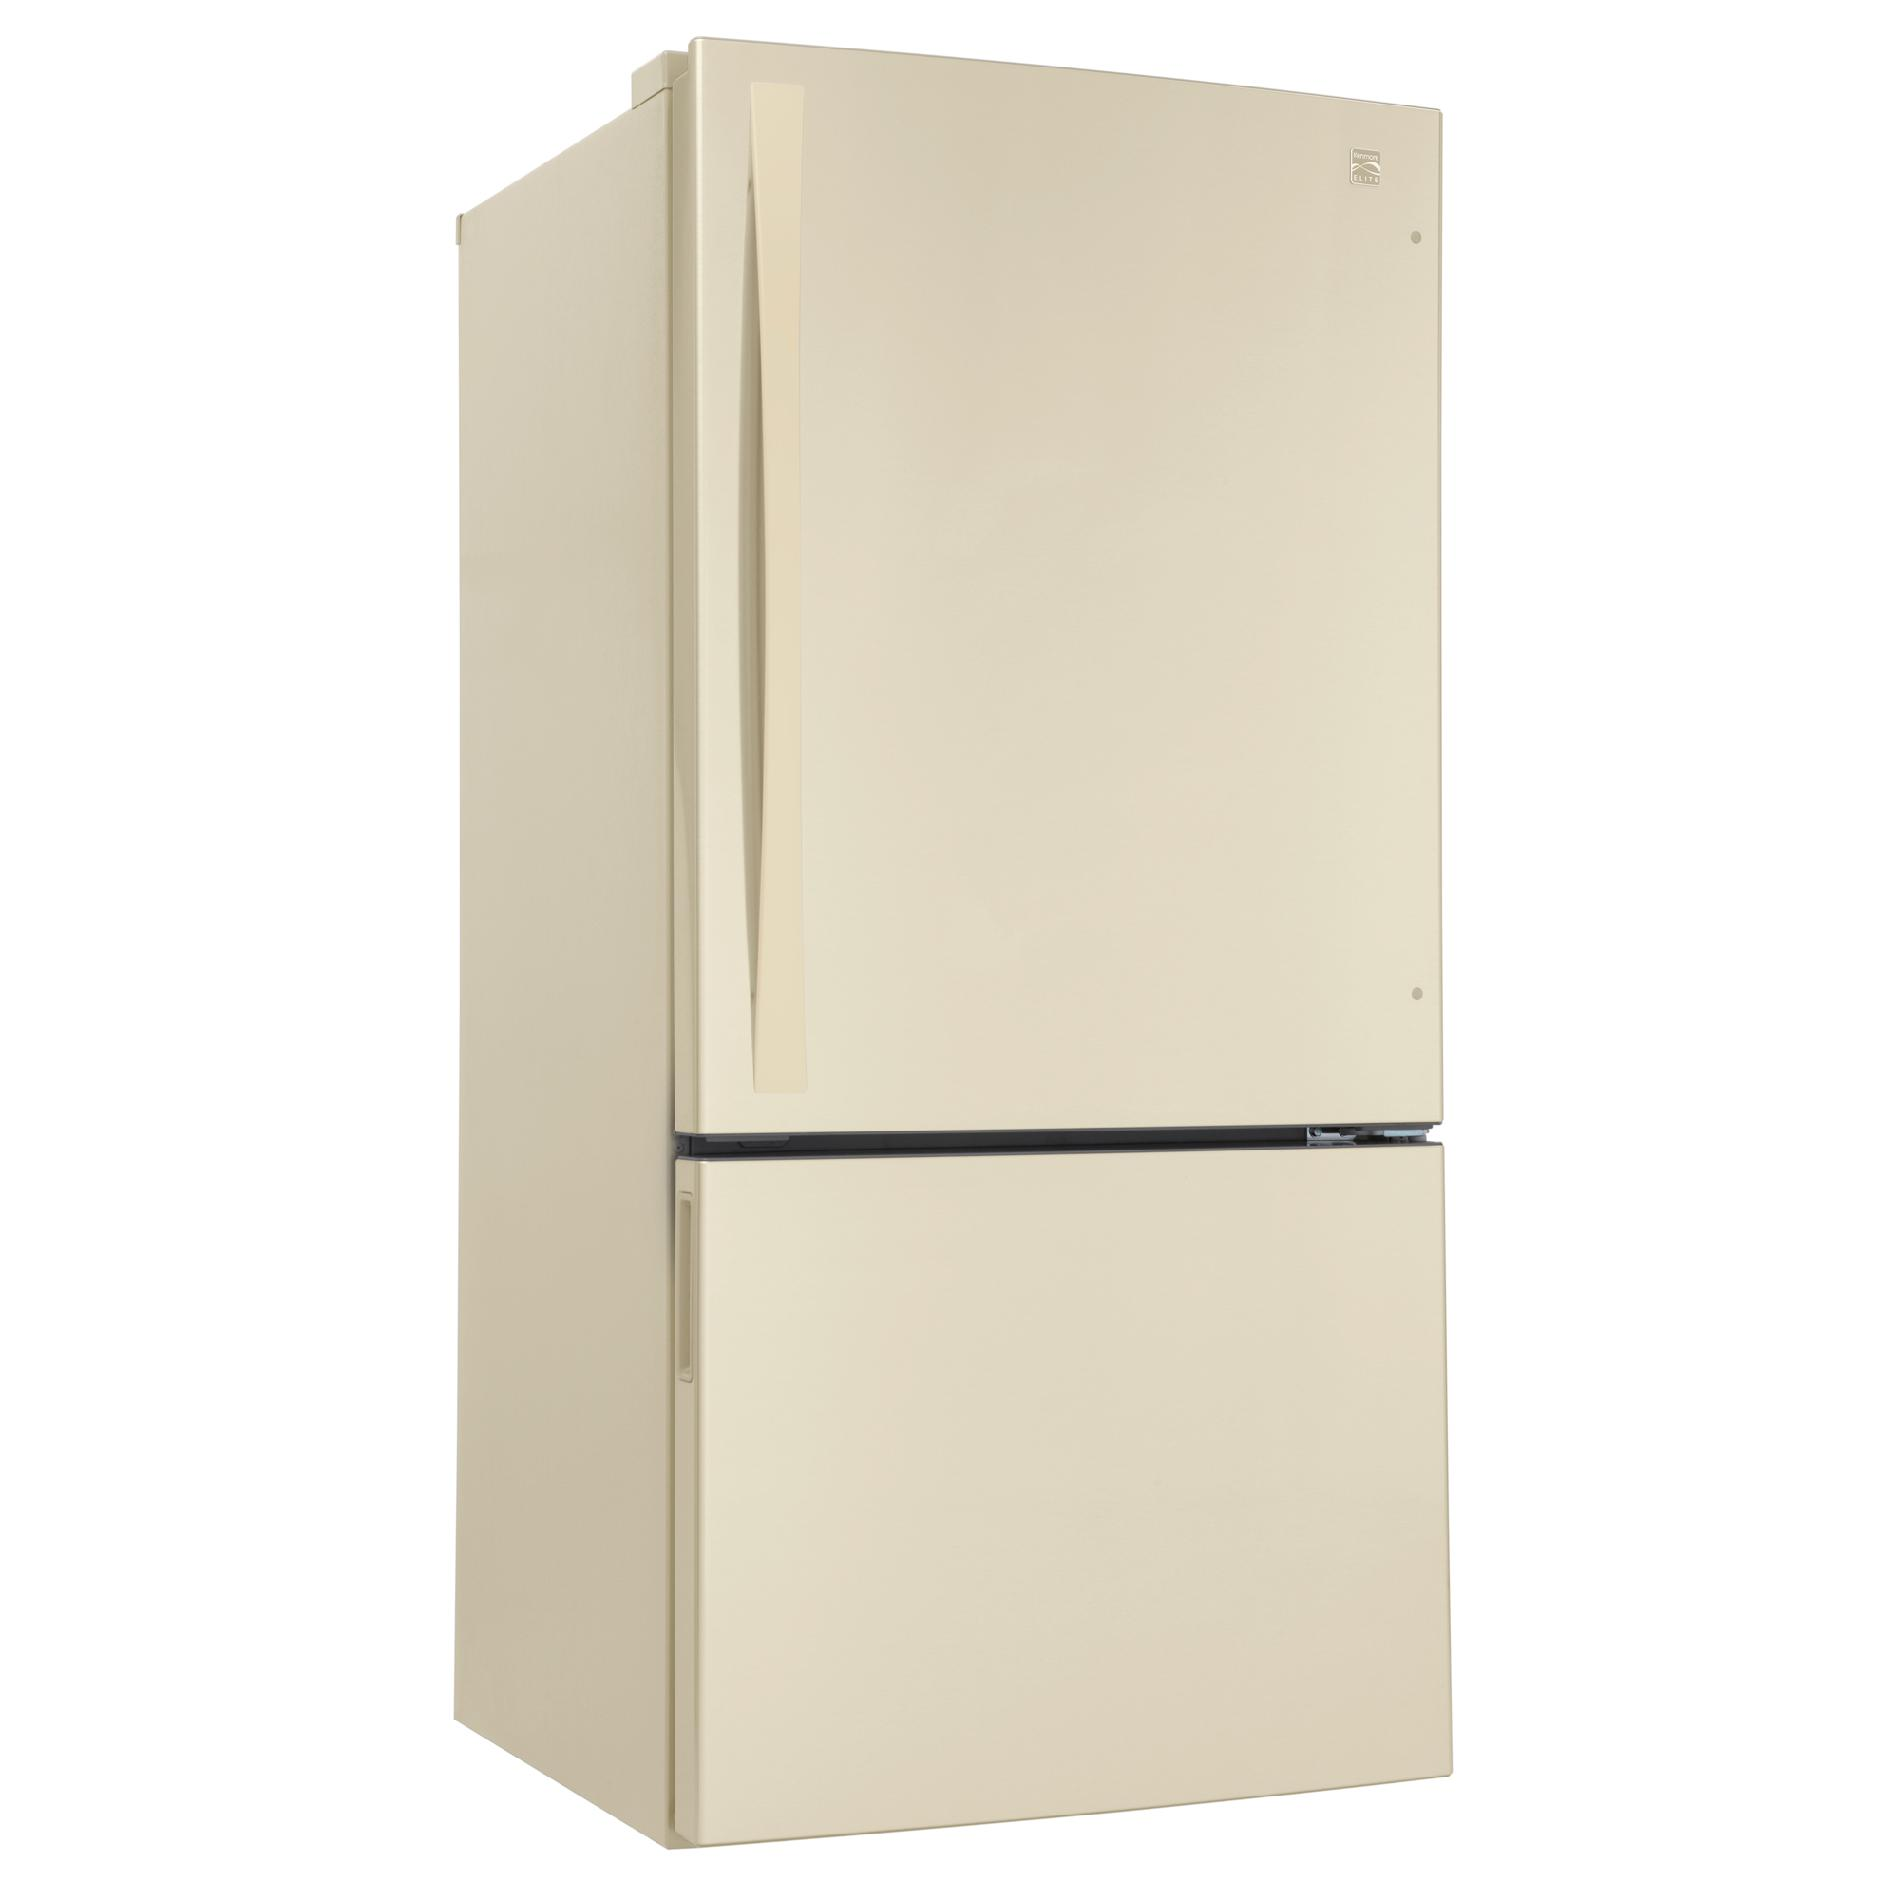 Kenmore Elite 24.1 cu. ft. Bottom-Freezer Refrigerator - Bisque